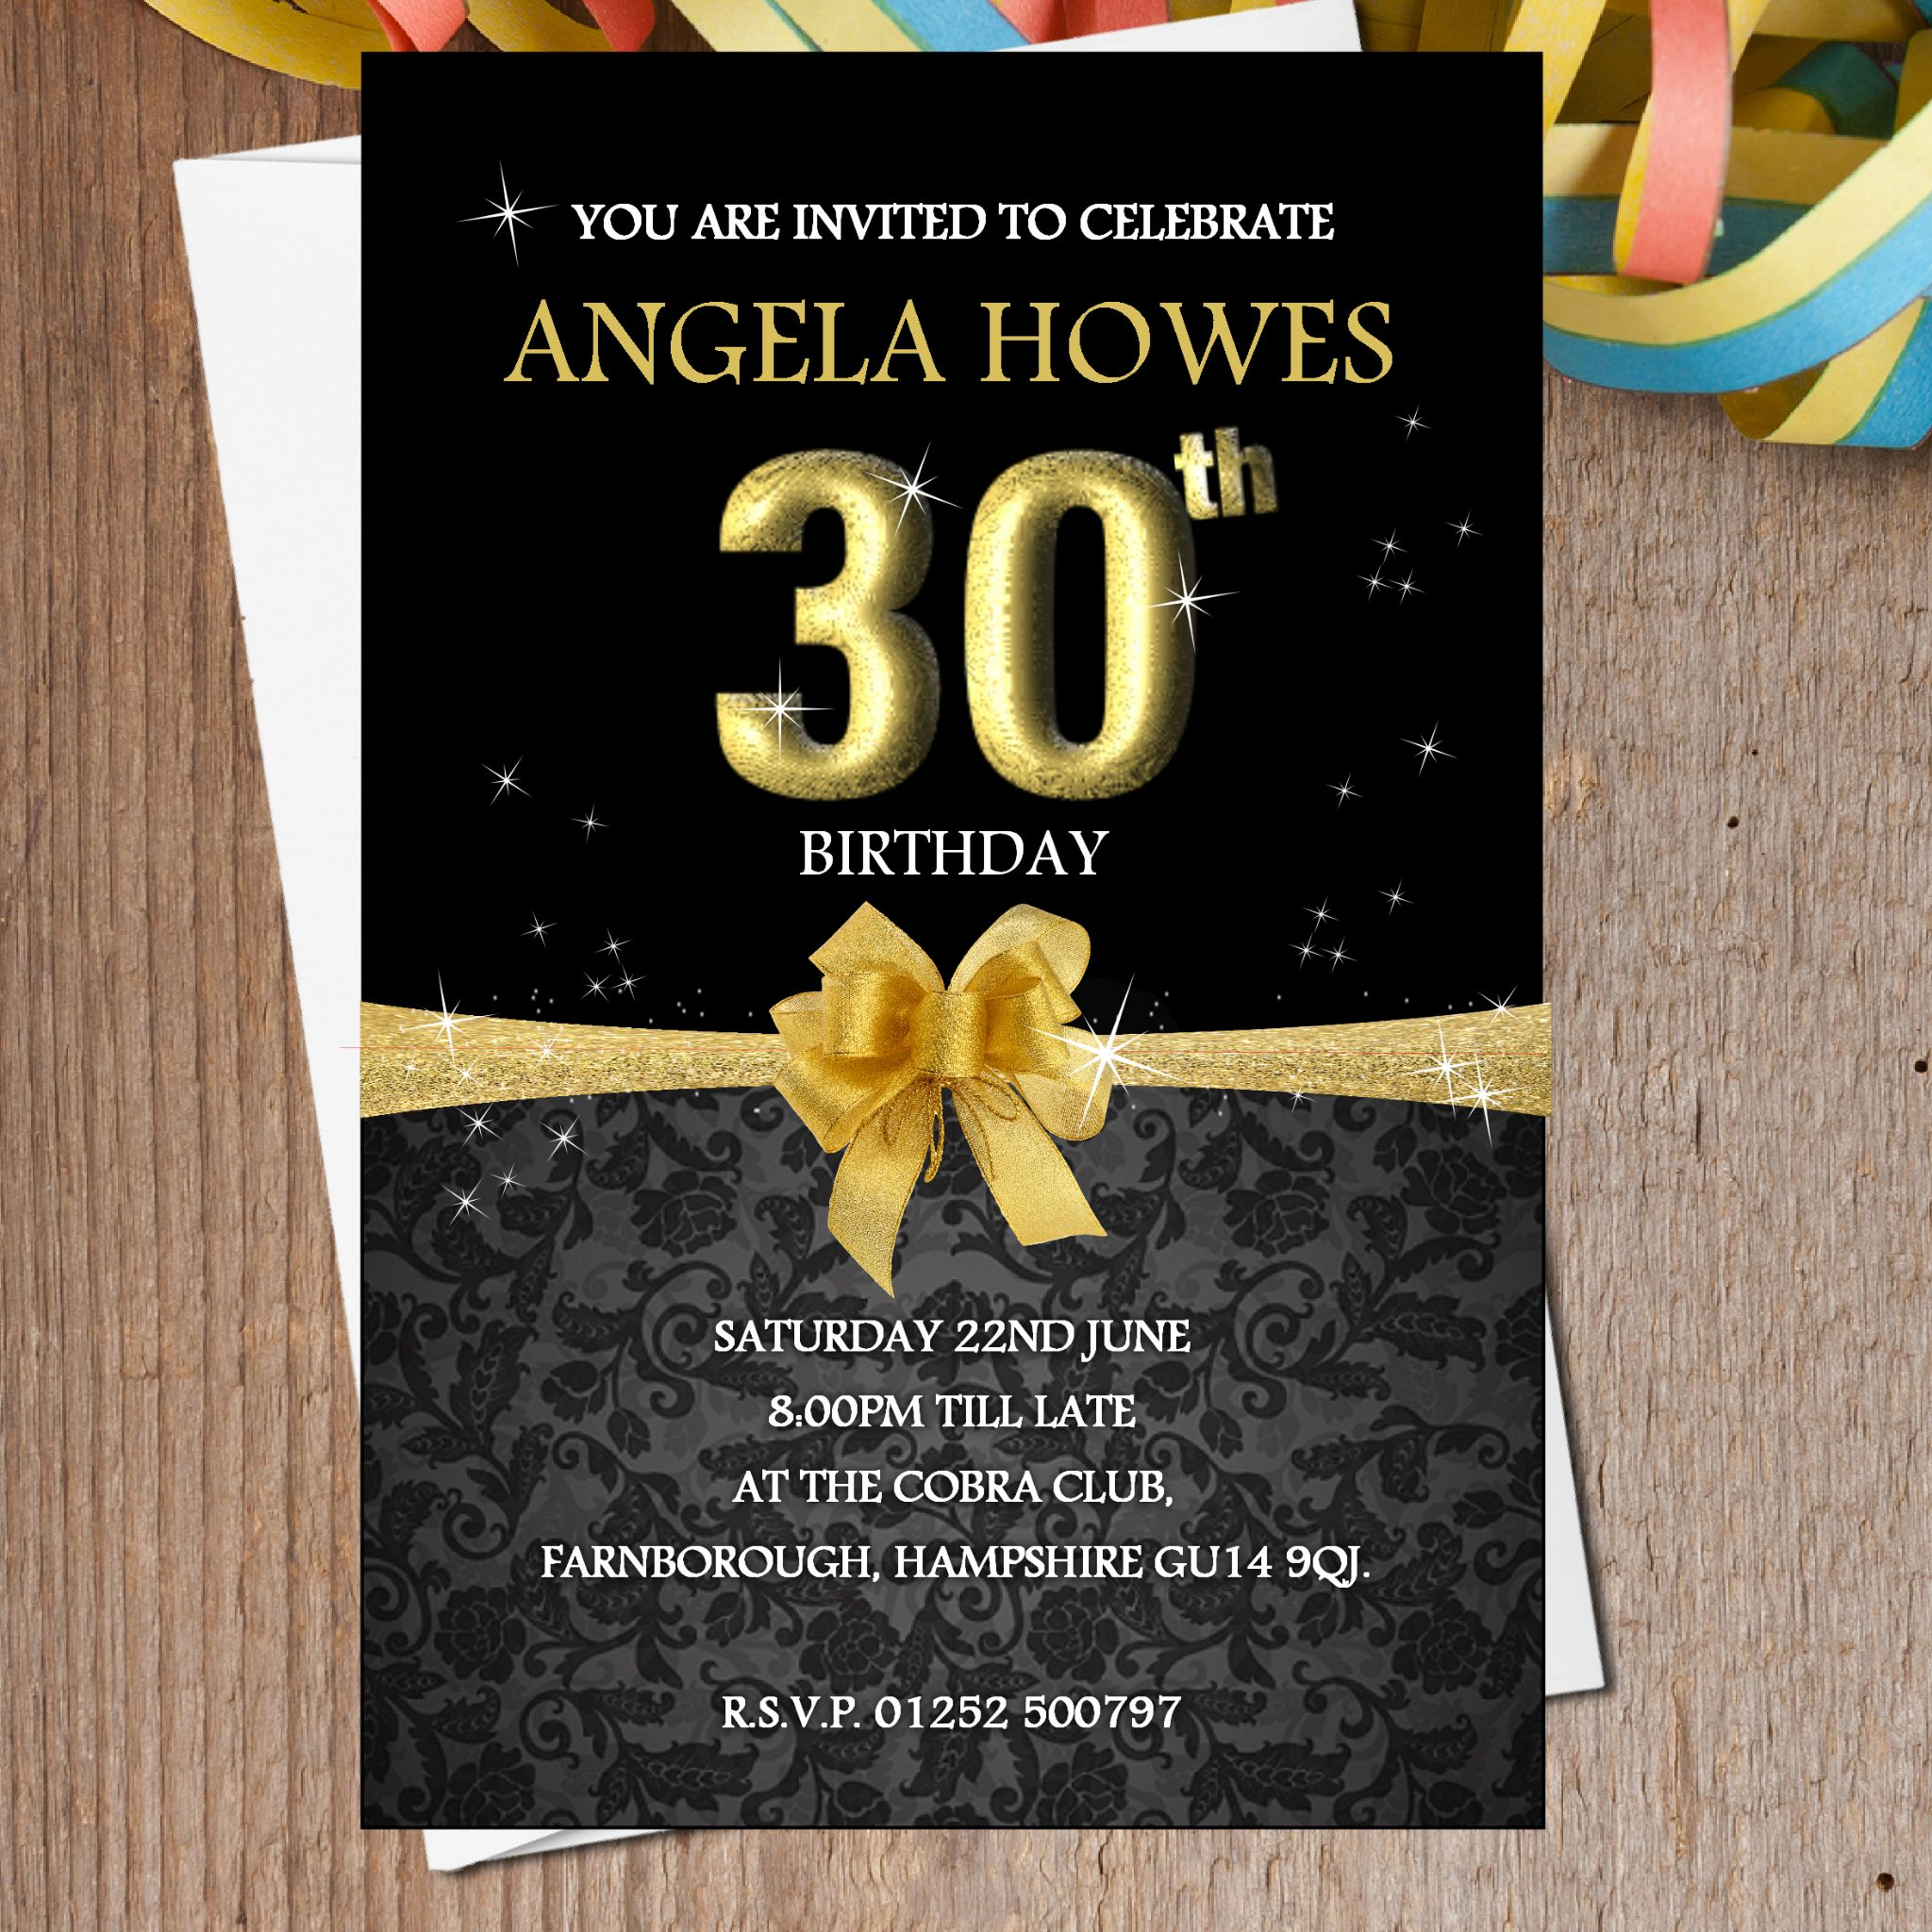 10 Personalised Black & Gold Birthday Party Invitations N193 - The ...